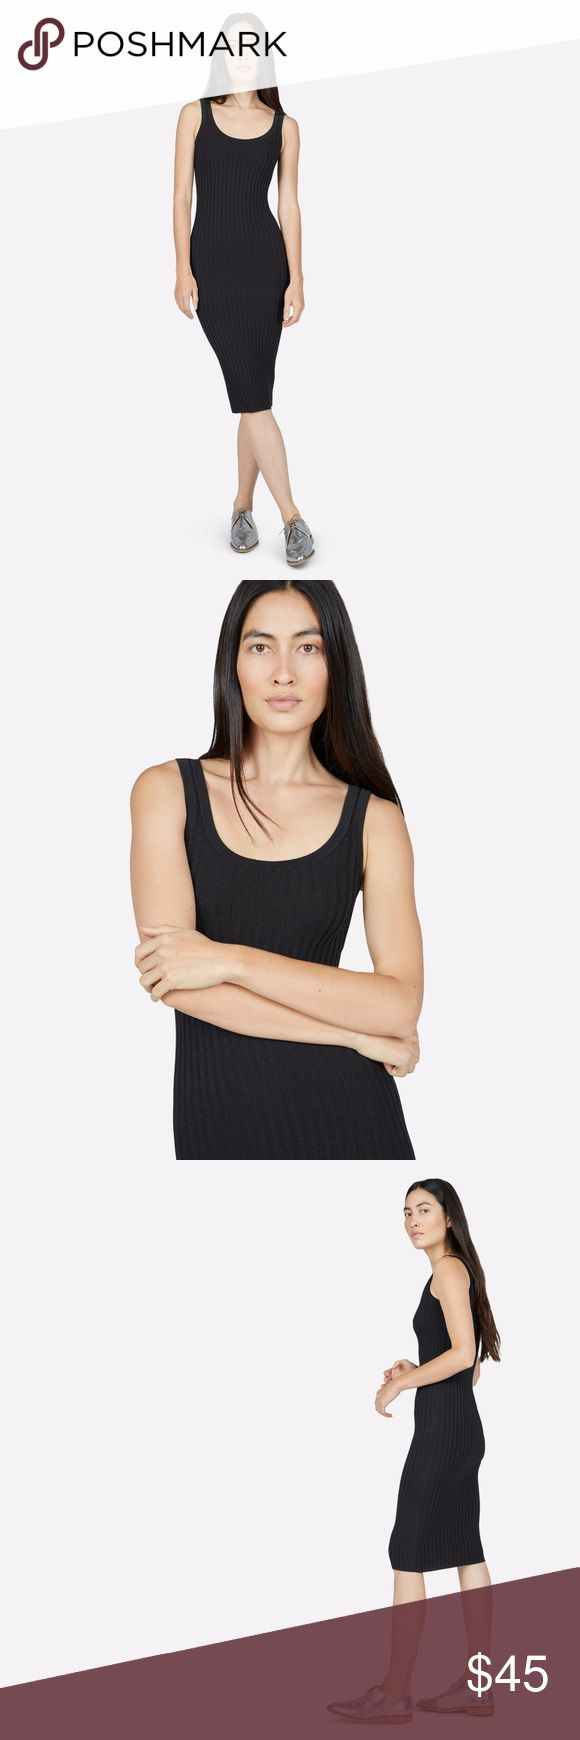 Everlane Black E2 Ribbed Midi Tank Dress size L This dress is from the E2 Capsule Collection!  Make an entrance. This fitted tank dress is made from a ribbed knit fabric with plenty of stretch, so it flatters curves—without being constricting.  Slim fit.  Material: 80% viscose; 20% nylon.  Measurements: 30 inch bust, 38 inch overall length - this dress has stretch to it so the bust size may increase; these measurements are taken with the dress unworn  Dry clean  Made in Dongguan, China…